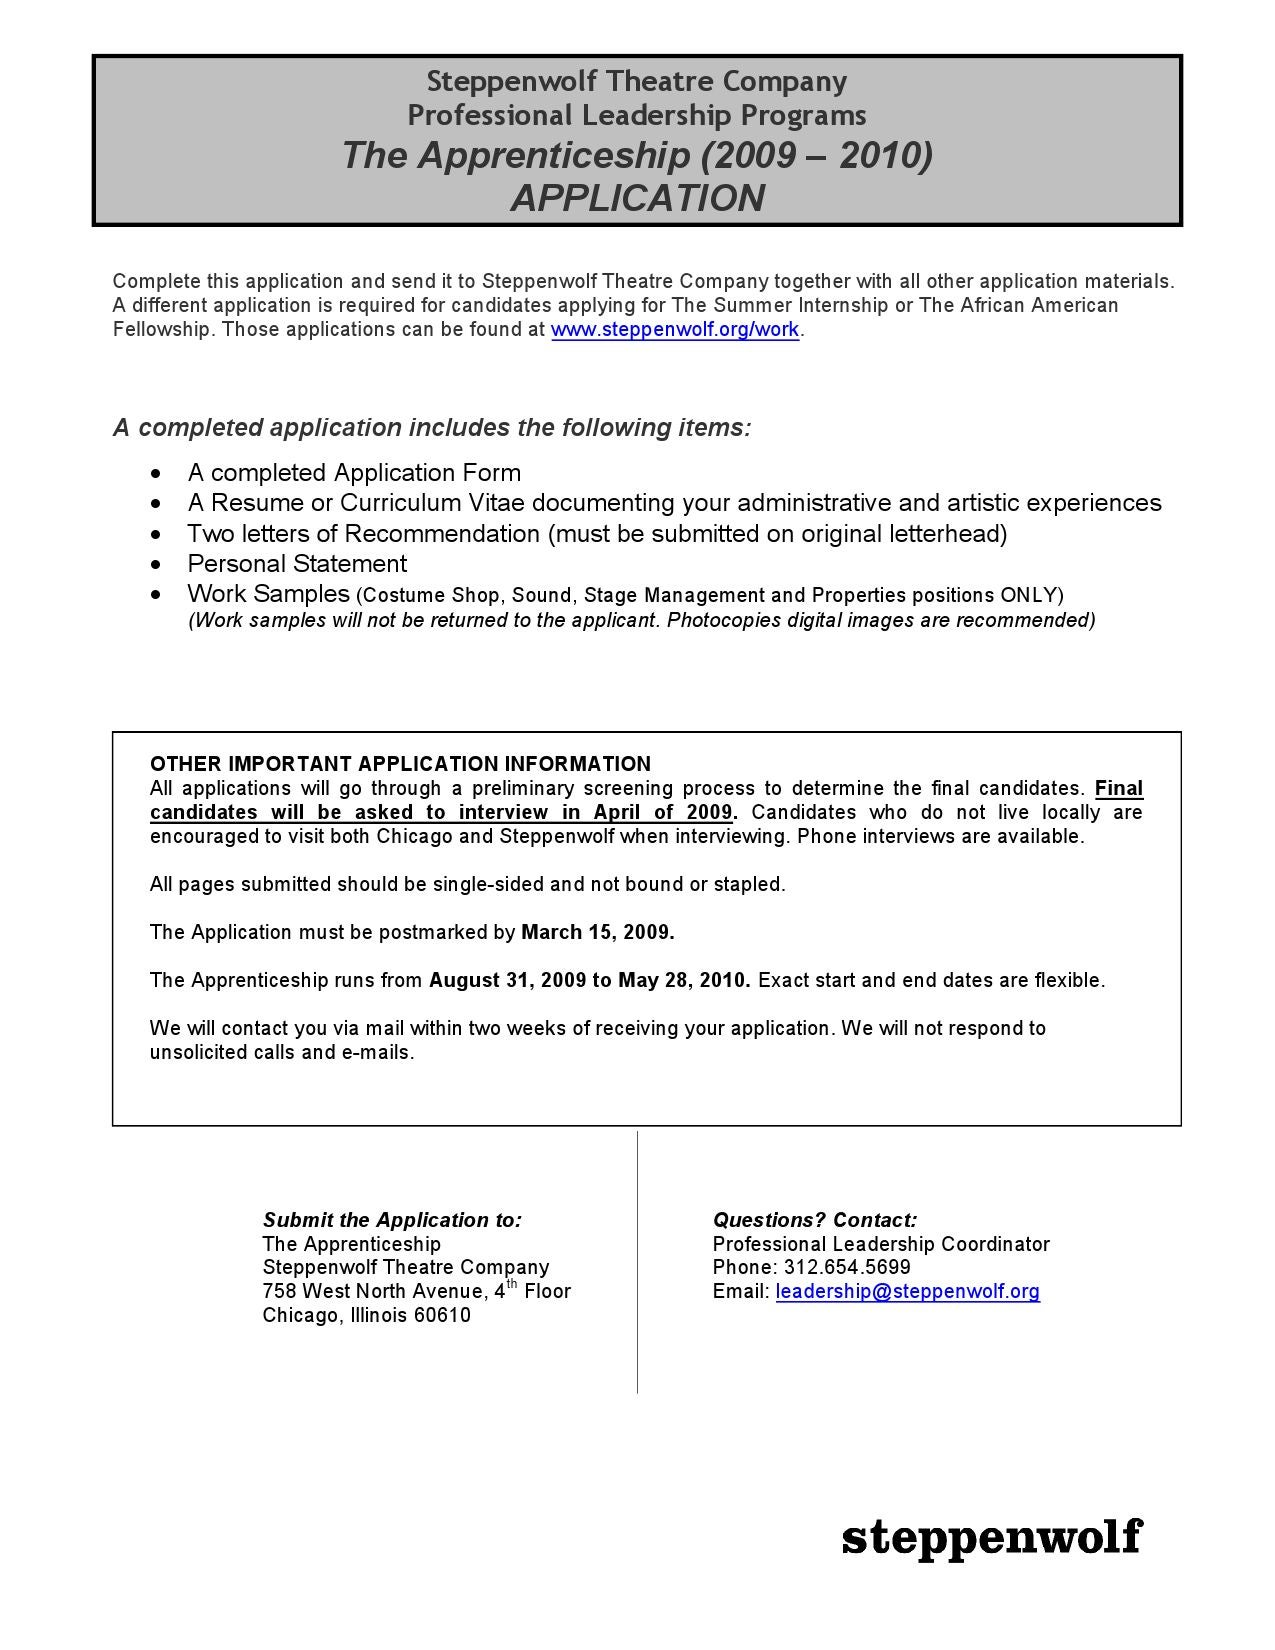 Resume Double Sided Http Steppenwolf Org Pdf Apprenticeship